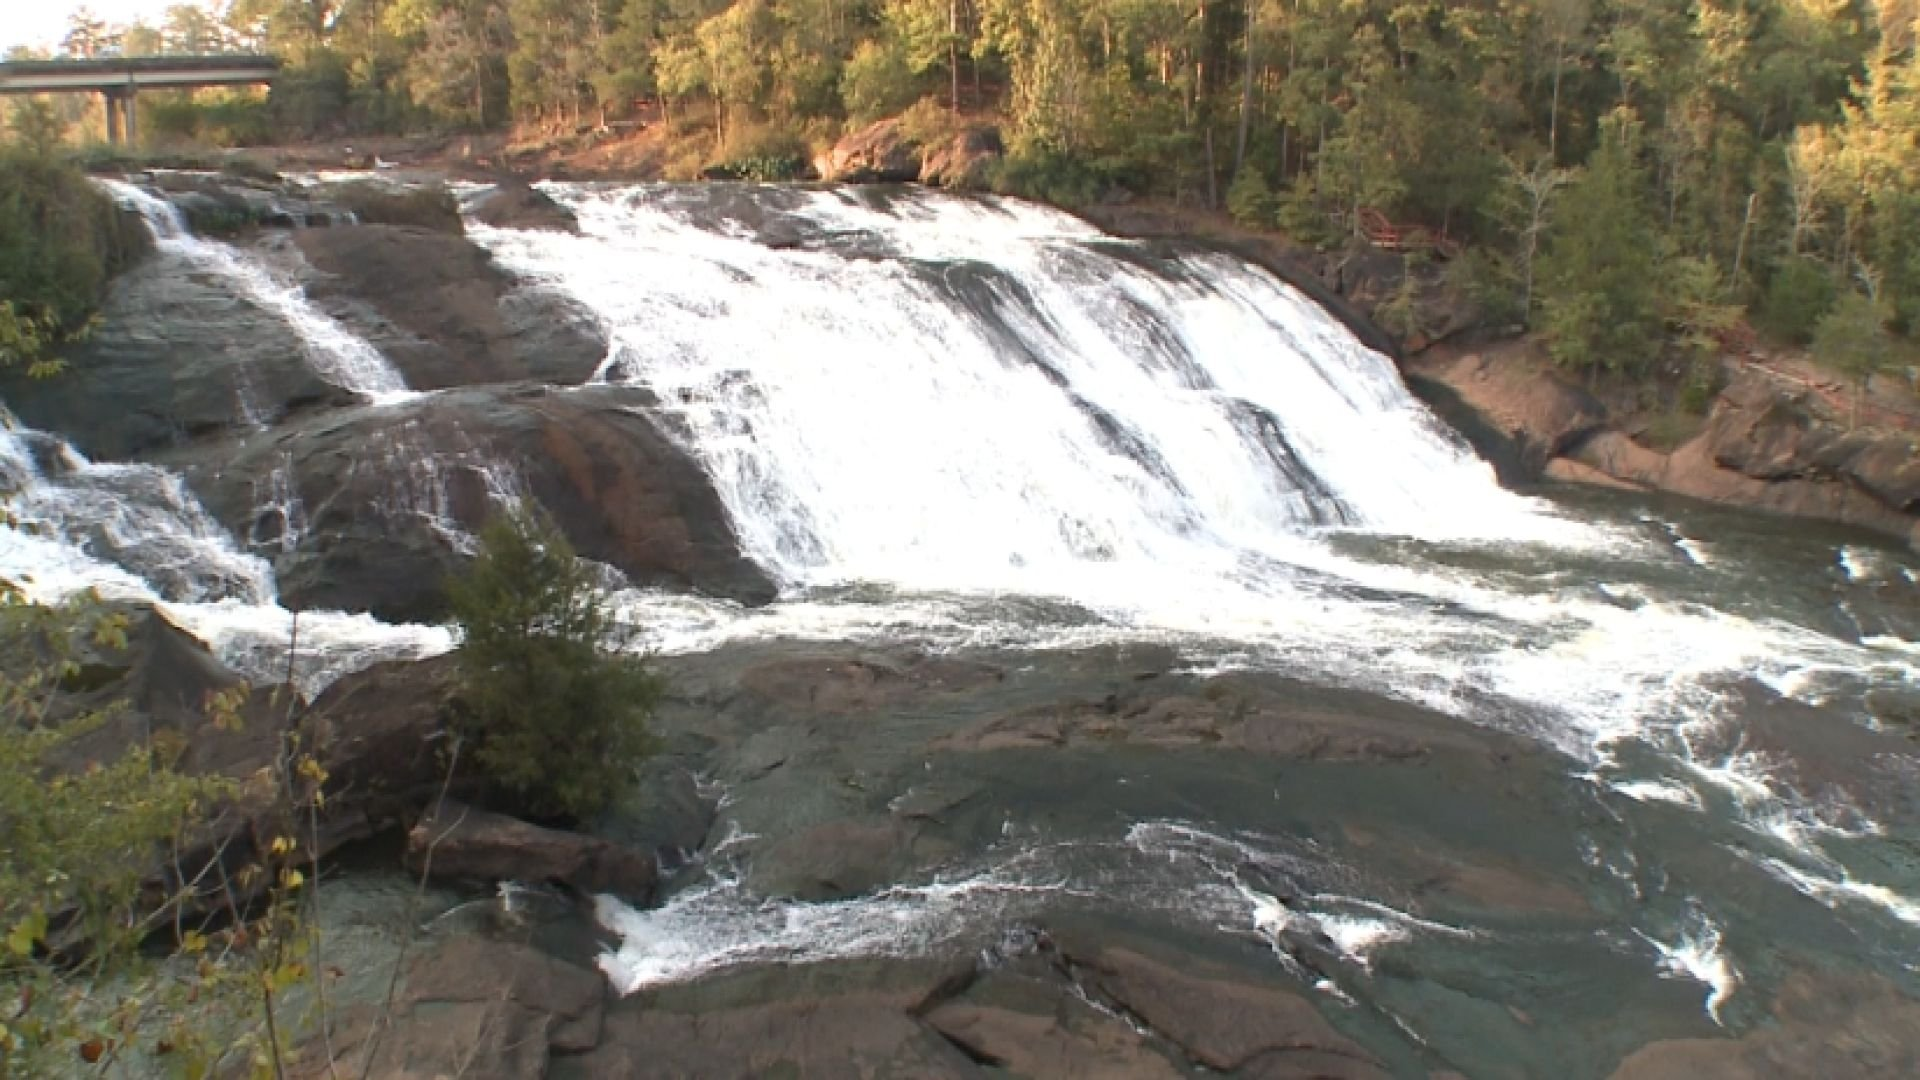 The 17-year-old rescued from Georgia's High Falls State Park after his younger brother died Tuesday is sharing his story of survival.